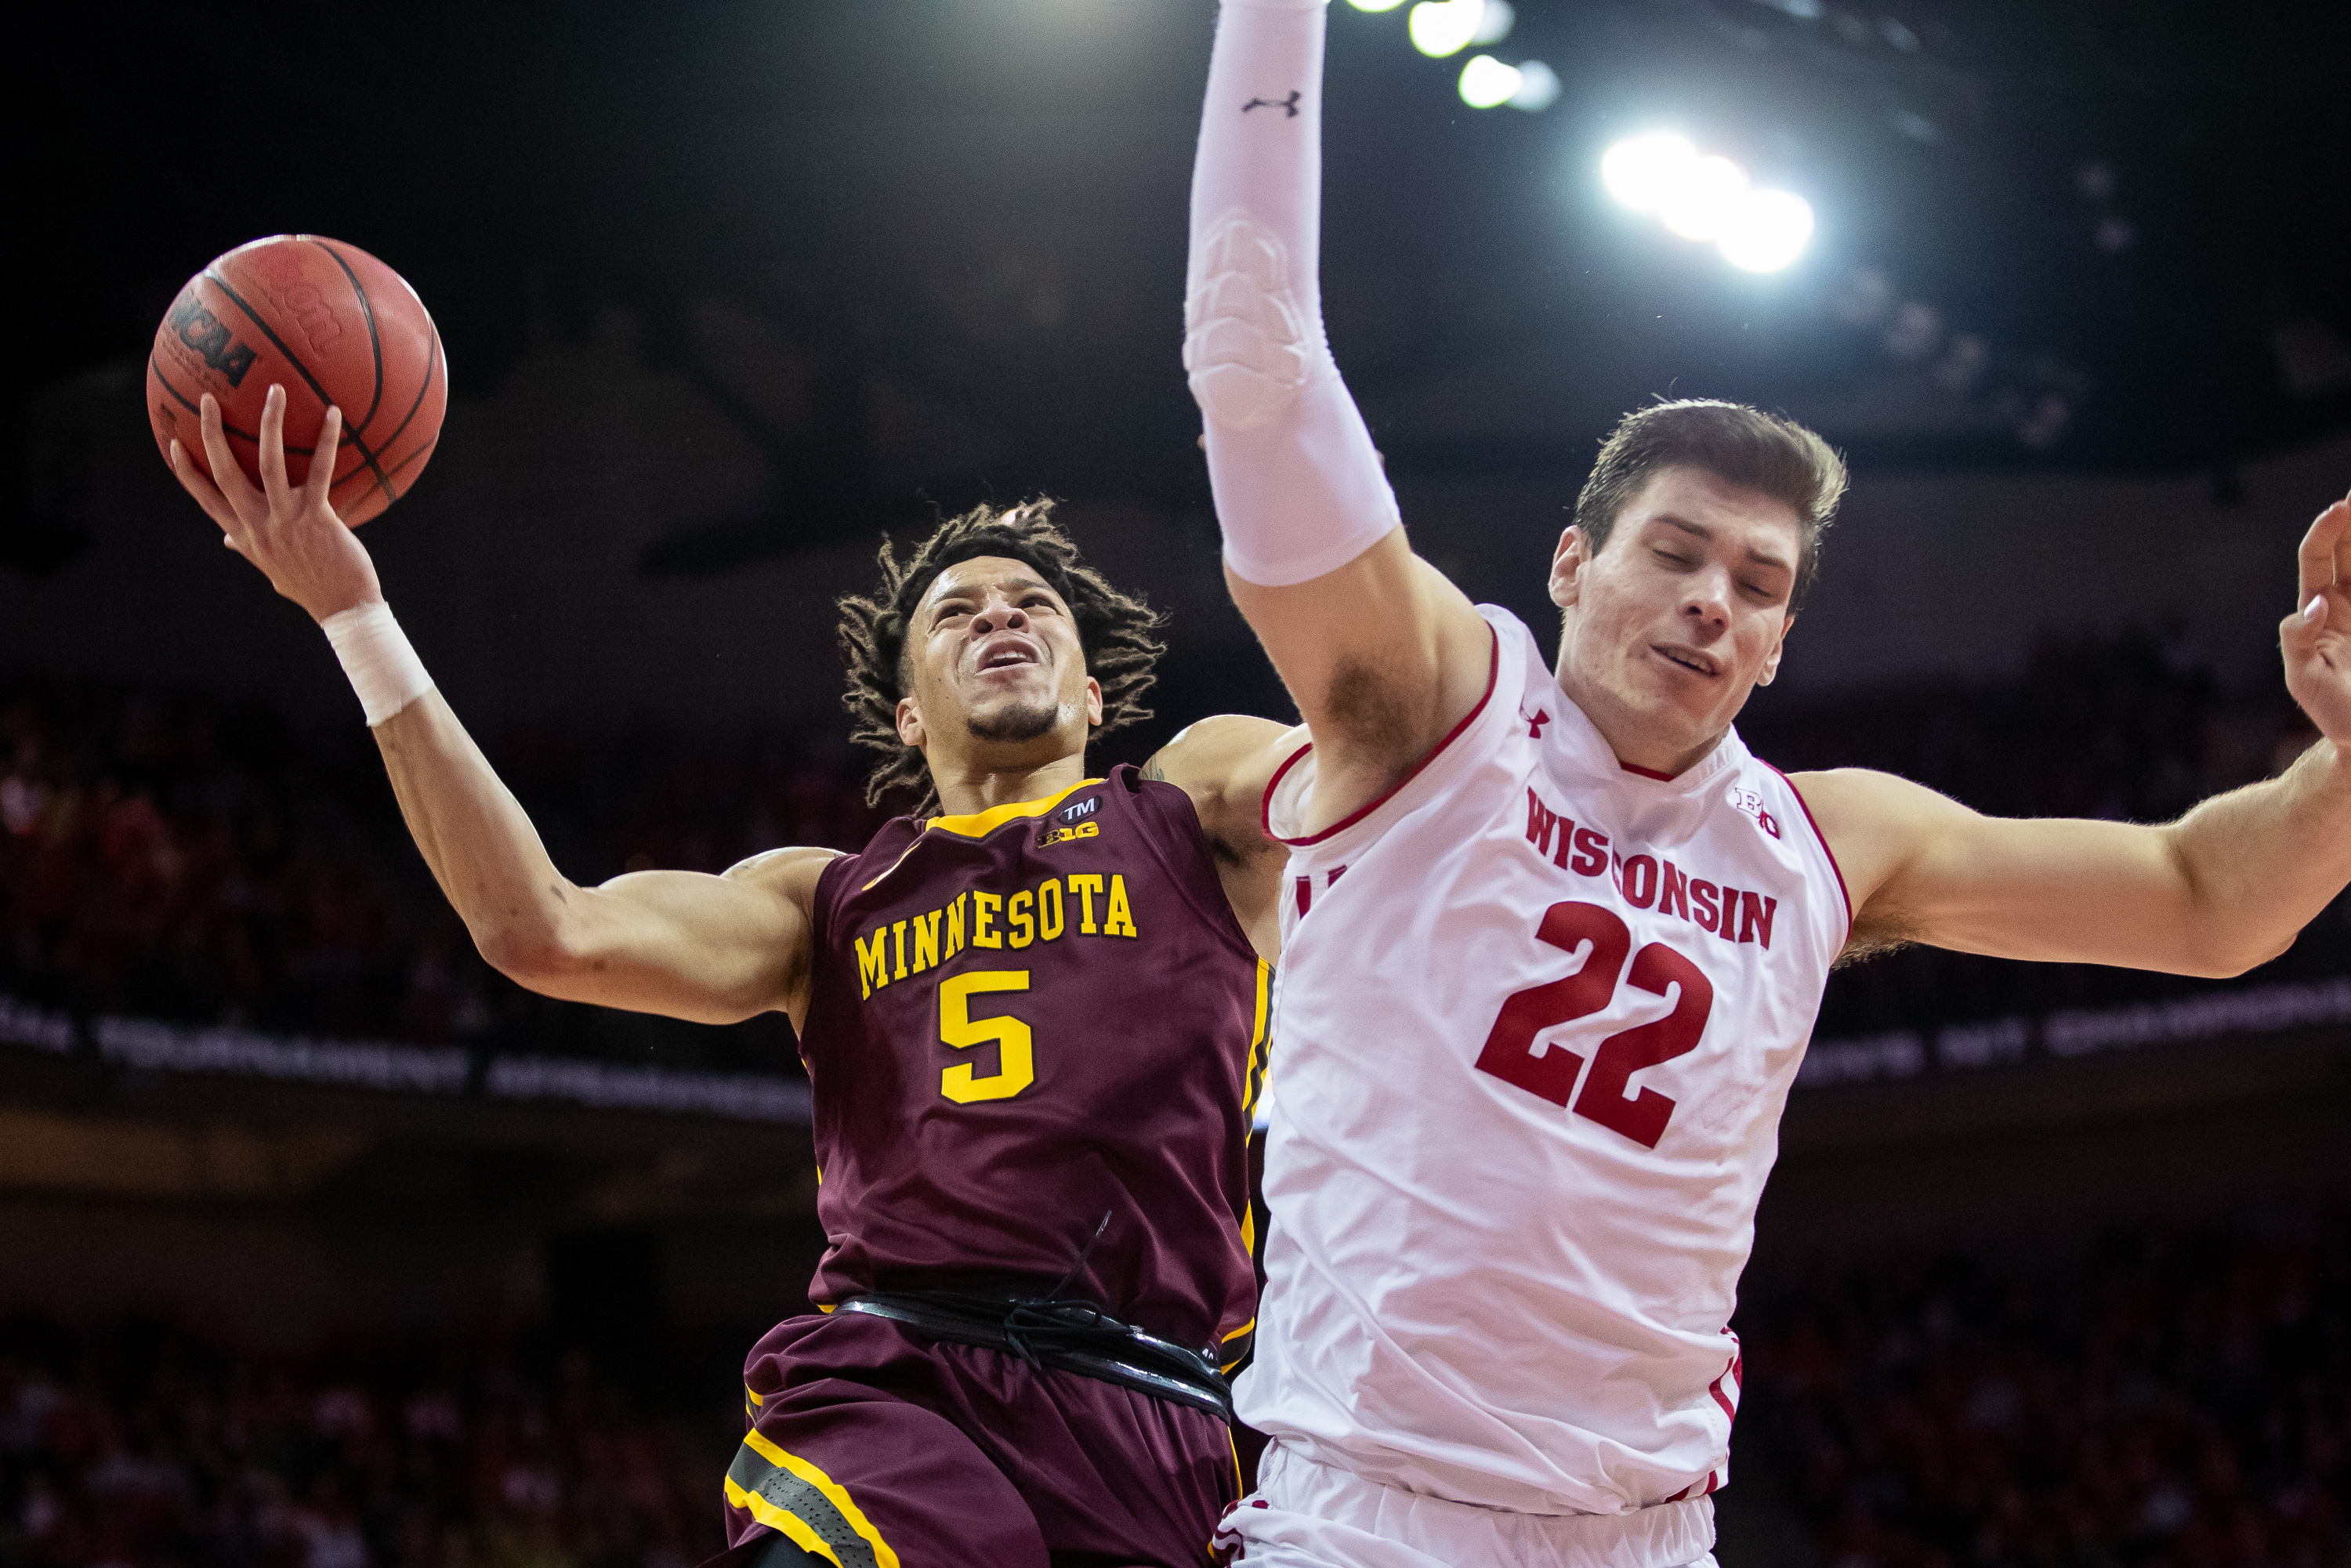 337b3037c Gophers Host 19th-Ranked Badgers in Border Battle - University of ...